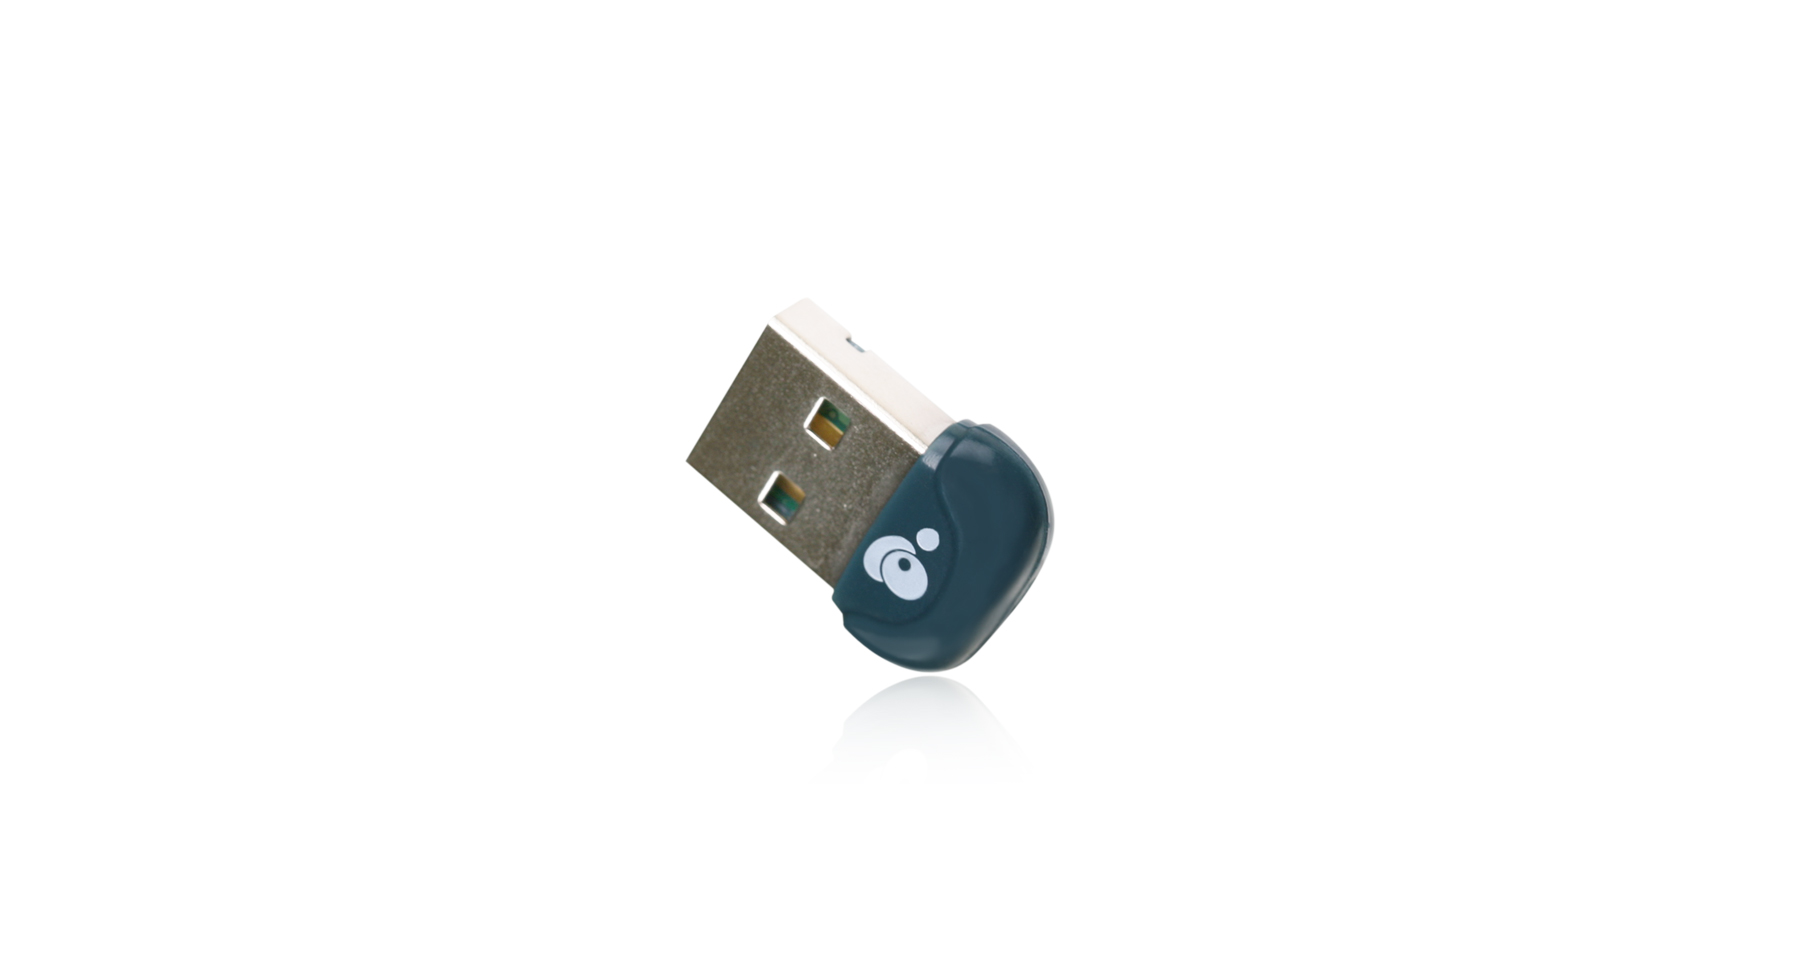 IOGEAR - GBU521 - | Bluetooth Adapter | Bluetooth Dongle